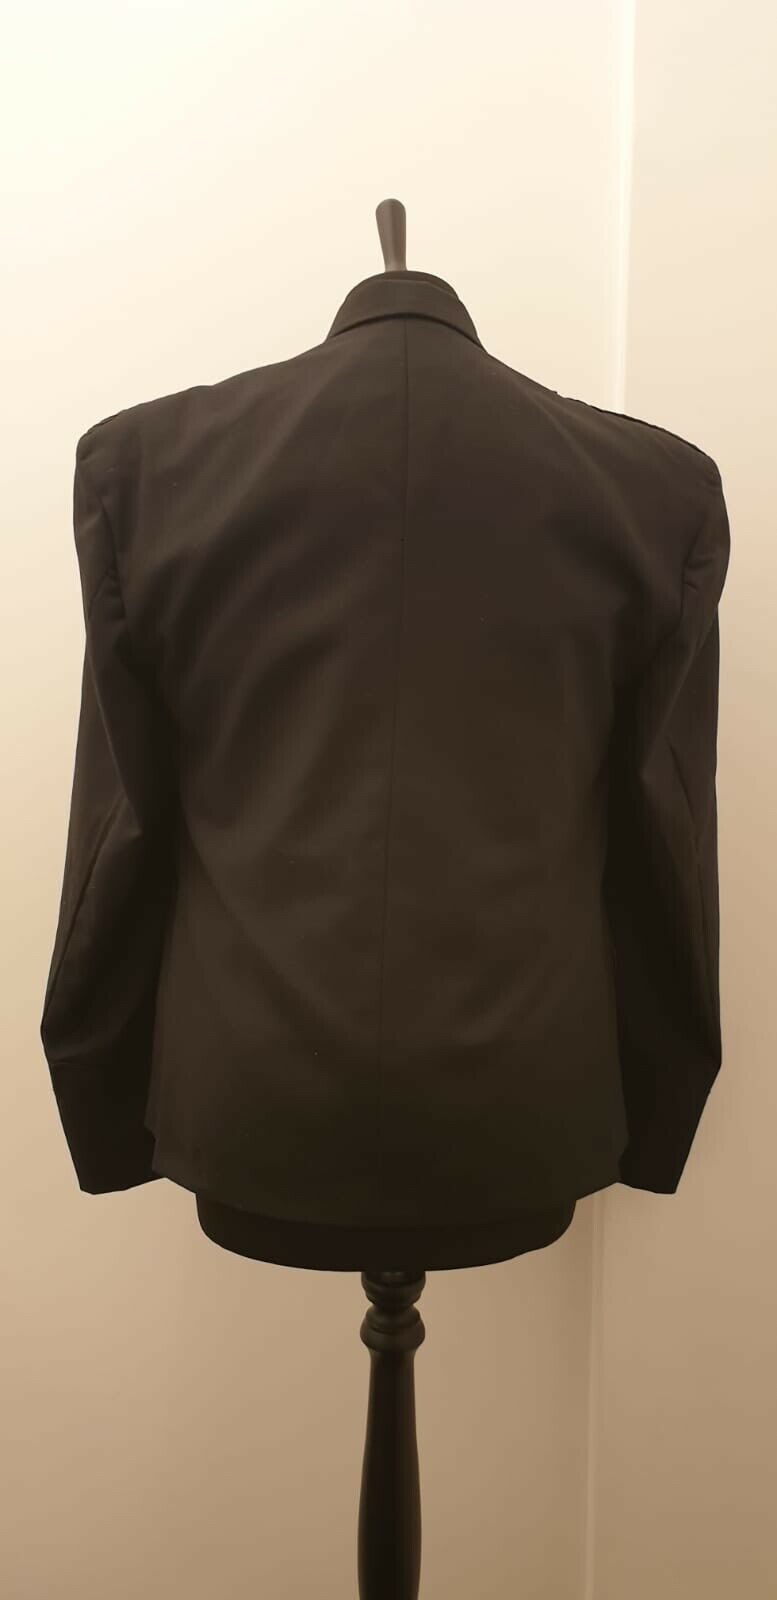 gents Argyle UK46 jacket and Waistcoat Black Available .Also Available In Bulk